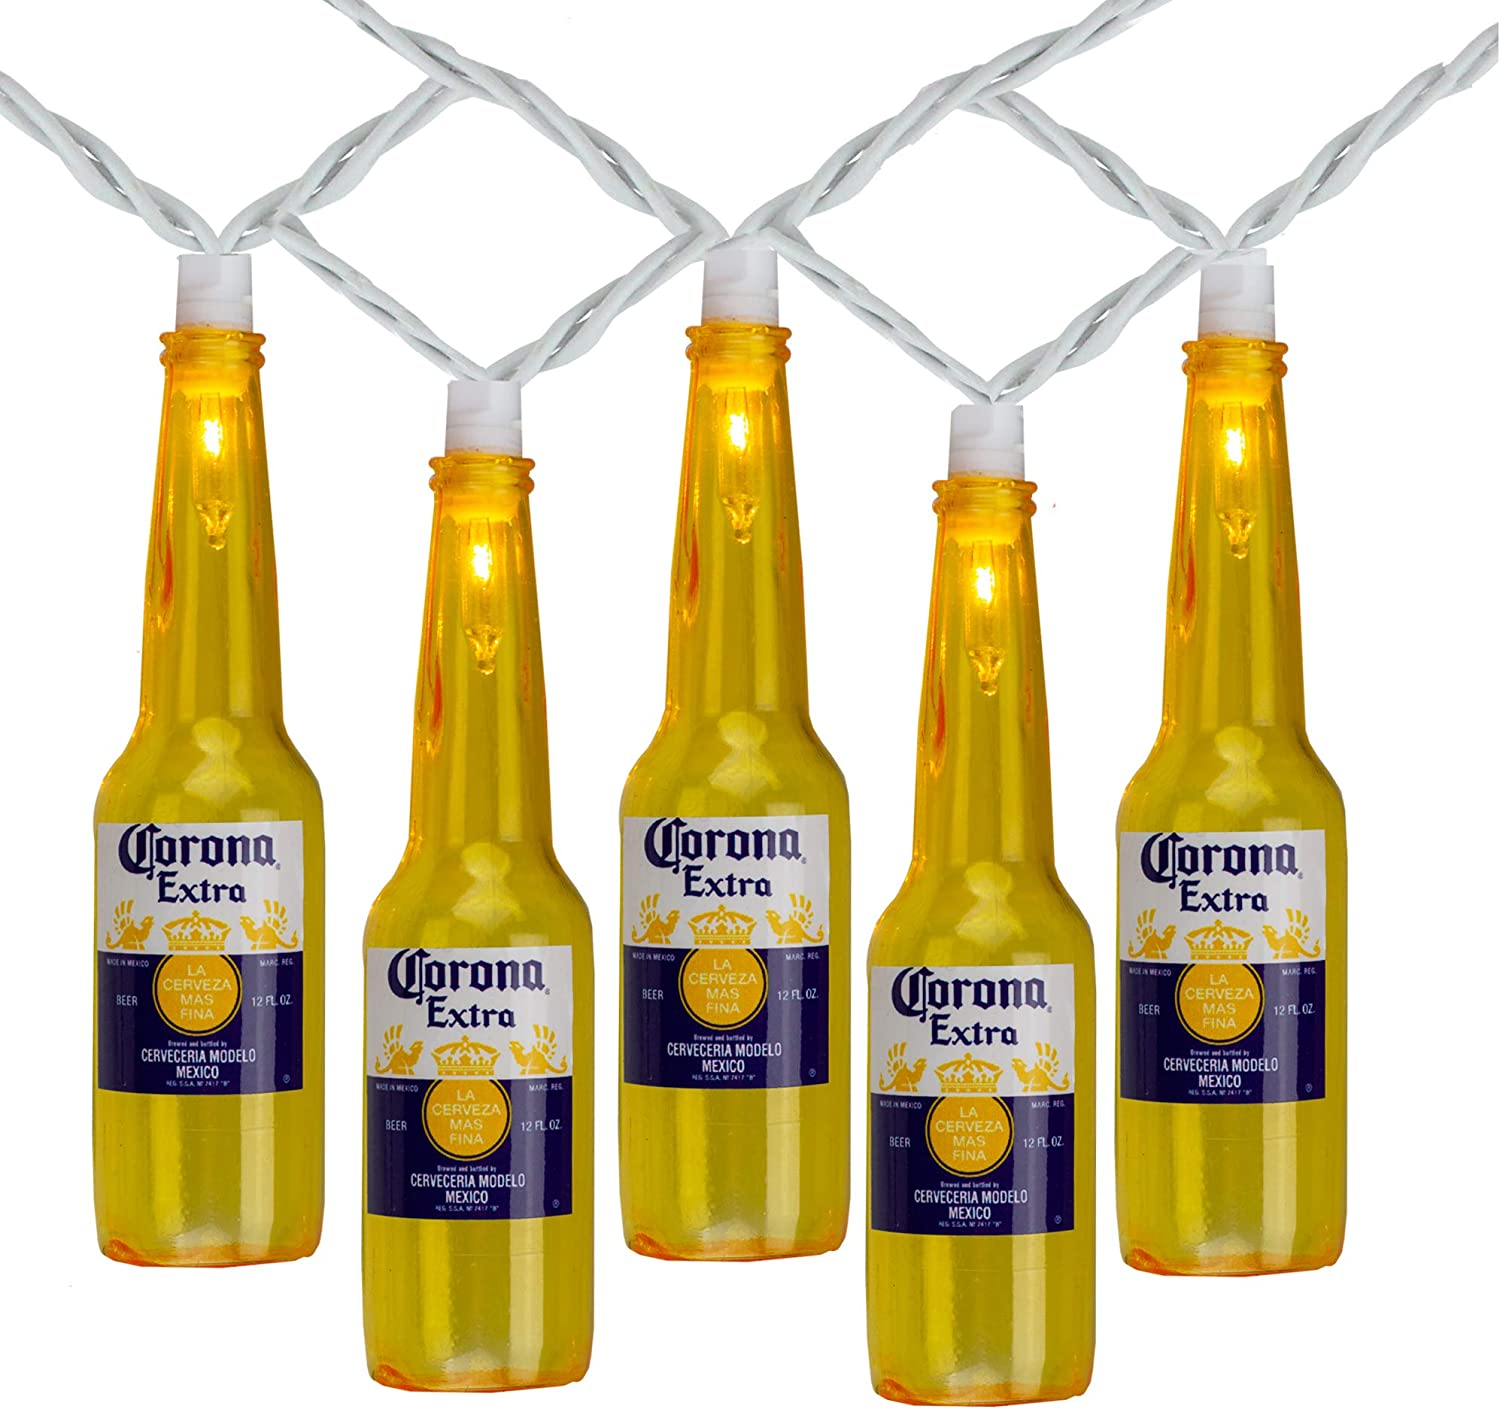 Amazon Com Northlight 10 Count Clear Corona Extra Beer Bottle Summer Patio Light Set 9ft White Wire Garden Outdoor